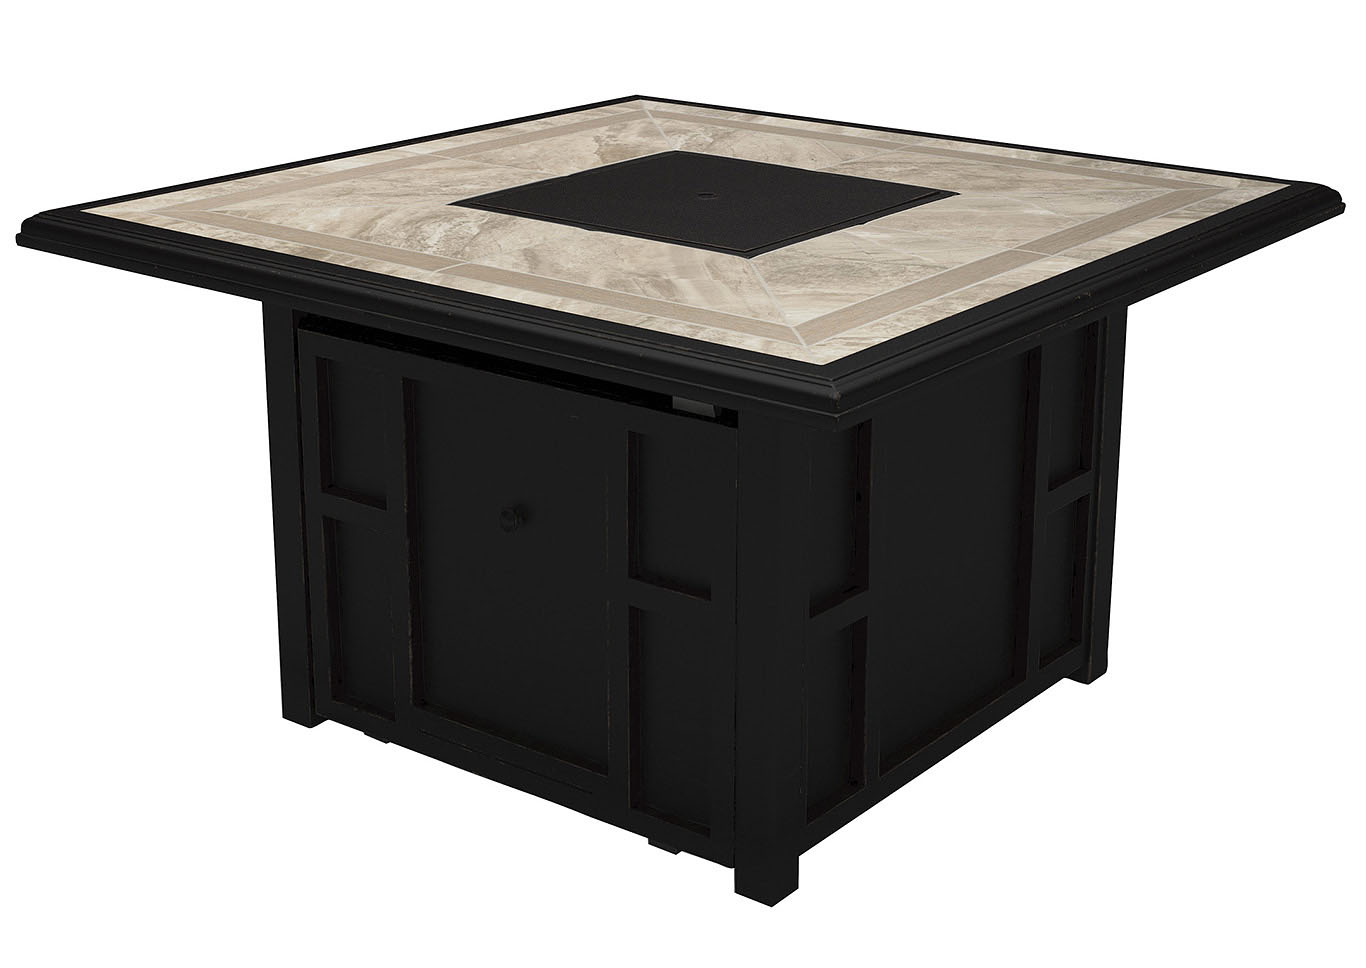 Chestnut Ridge Brown Square Fire Pit Table,Outdoor By Ashley